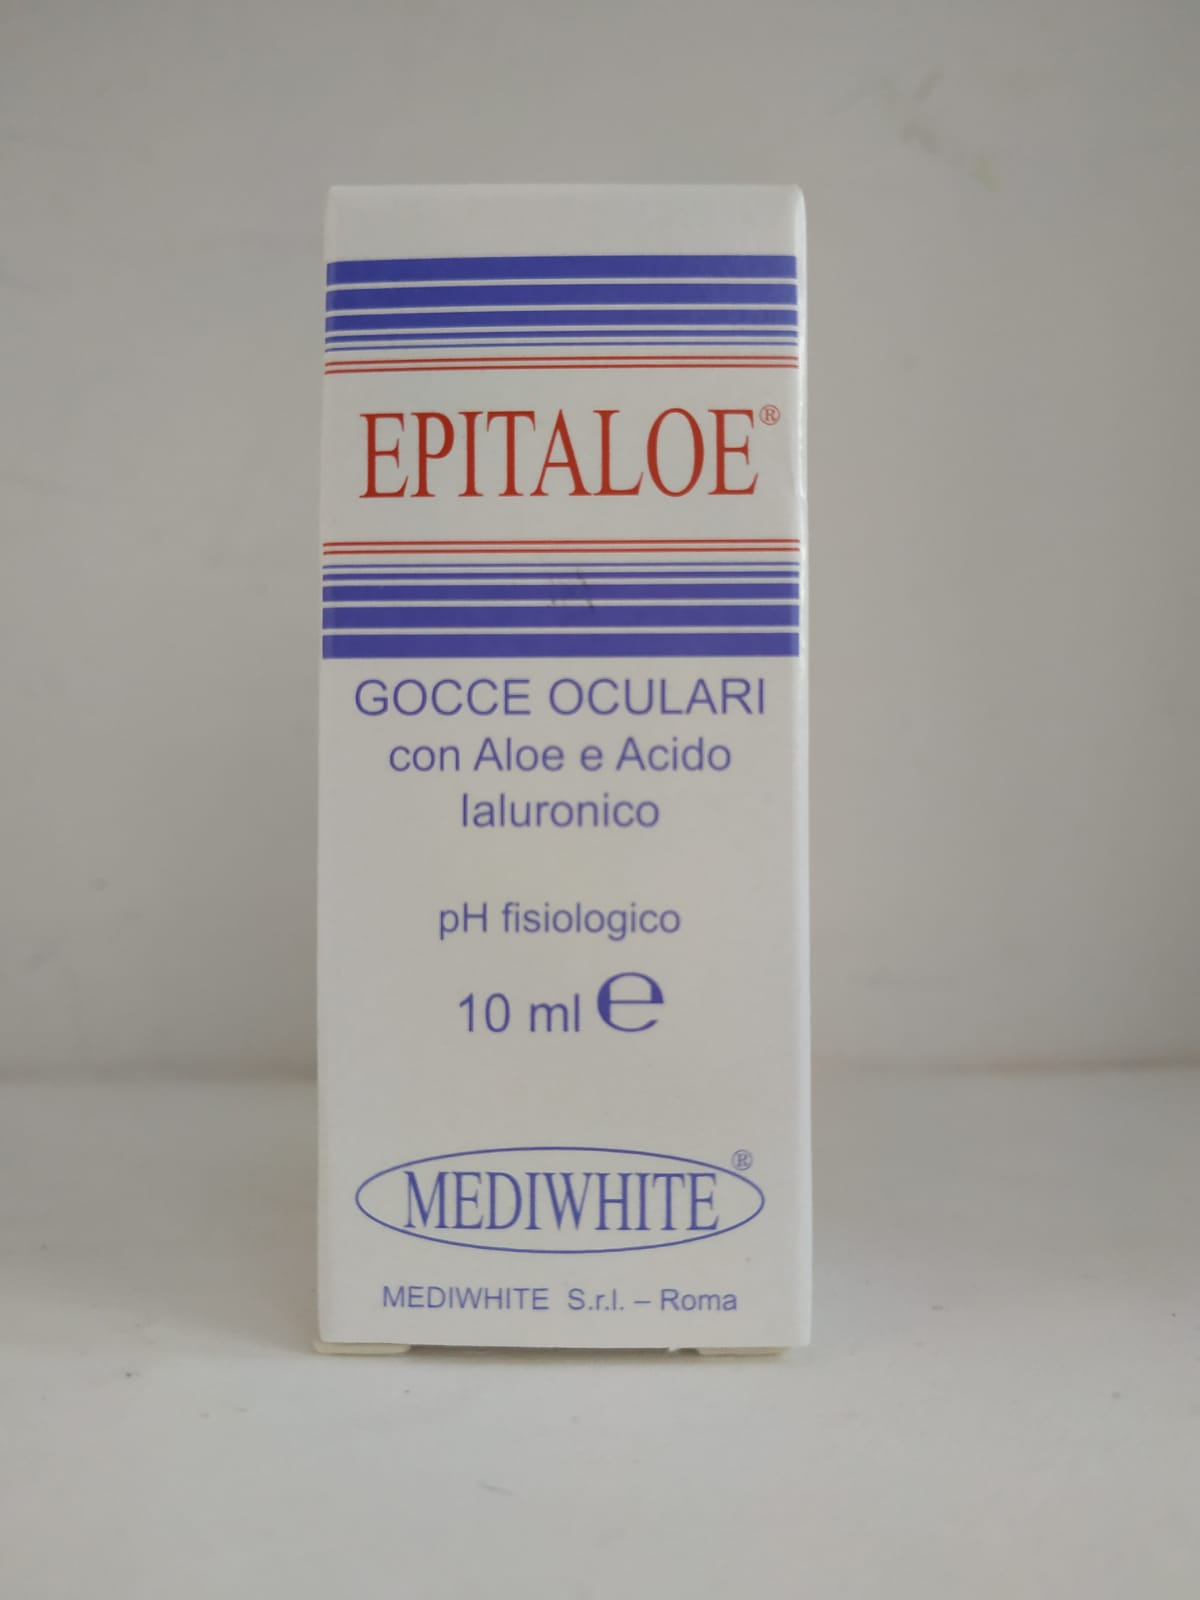 Epitaloe Gocce Naturali Vegetali 10 ml